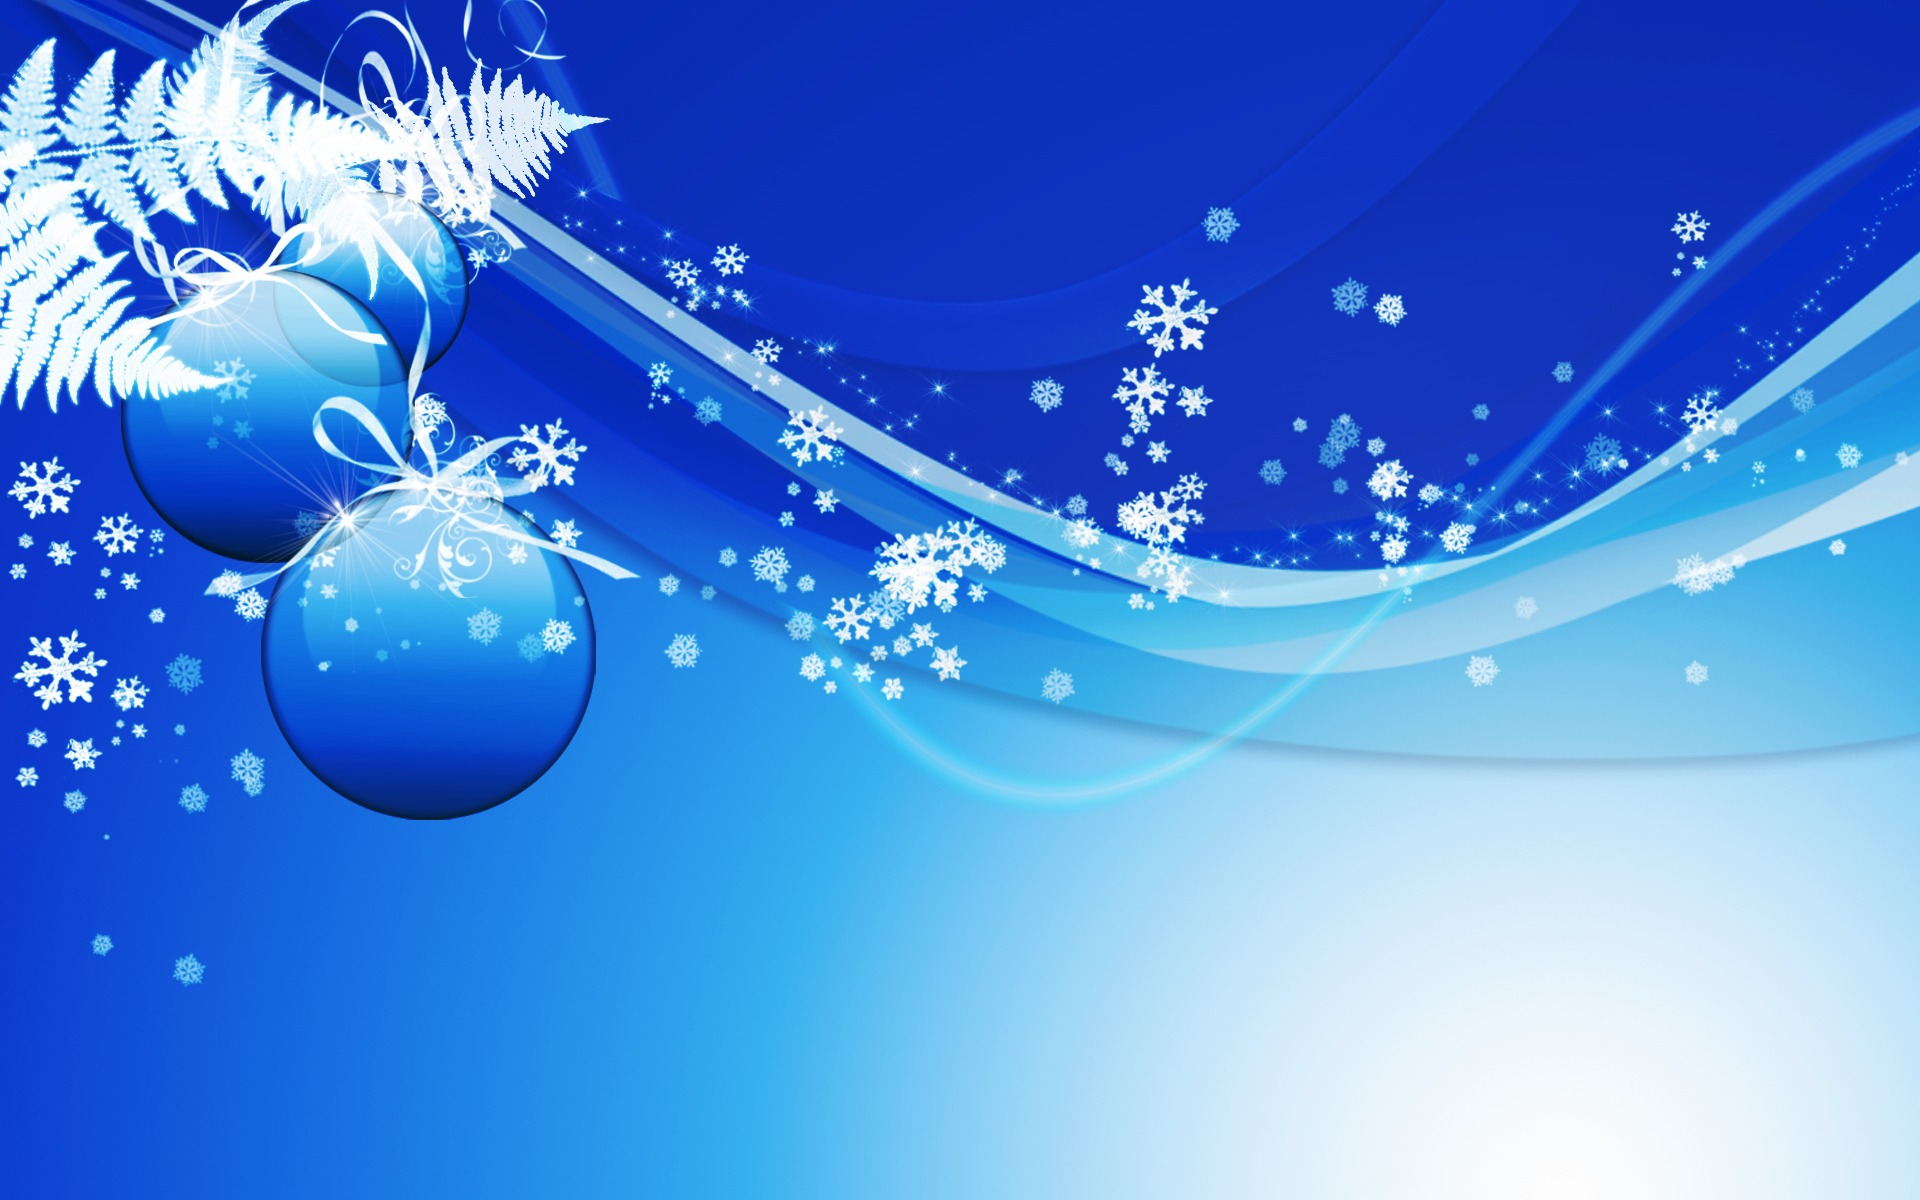 Go back to Christmas Wallpapers and Screensavers Next Image 1920x1200